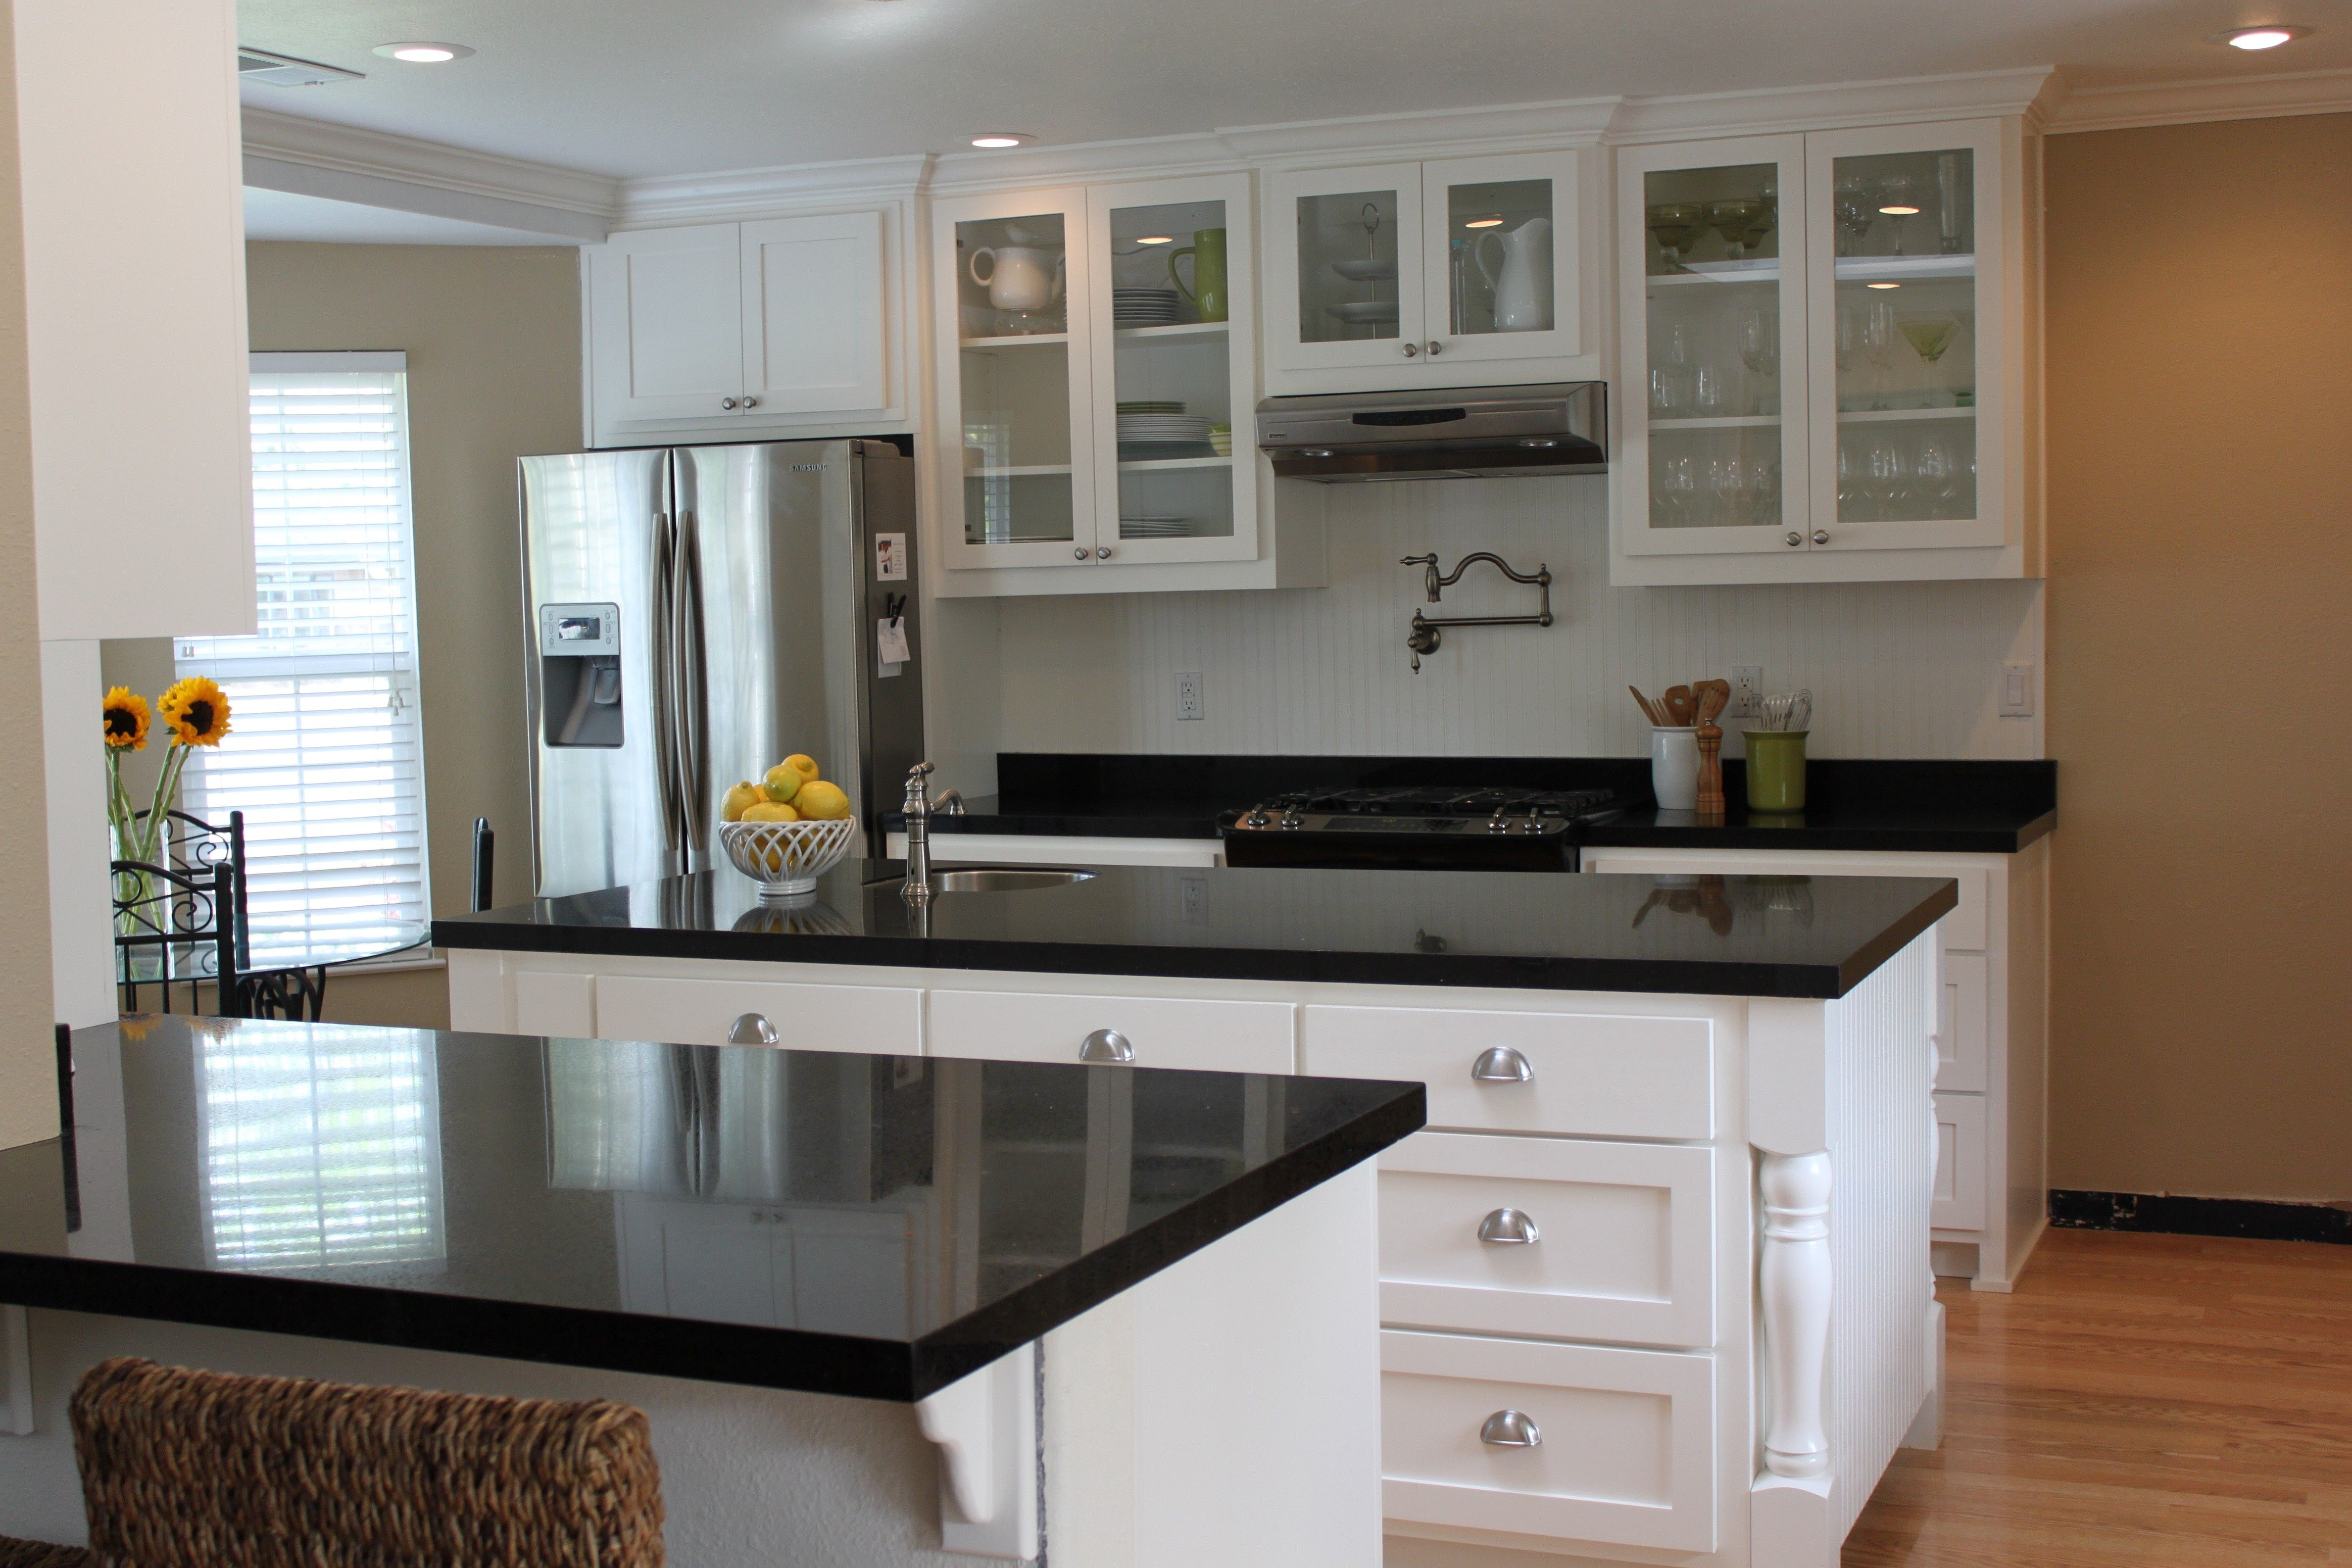 Grey Countertops Kitchen Cabinet And Island With Soft Off White Cabinets Granite - grey granite ...